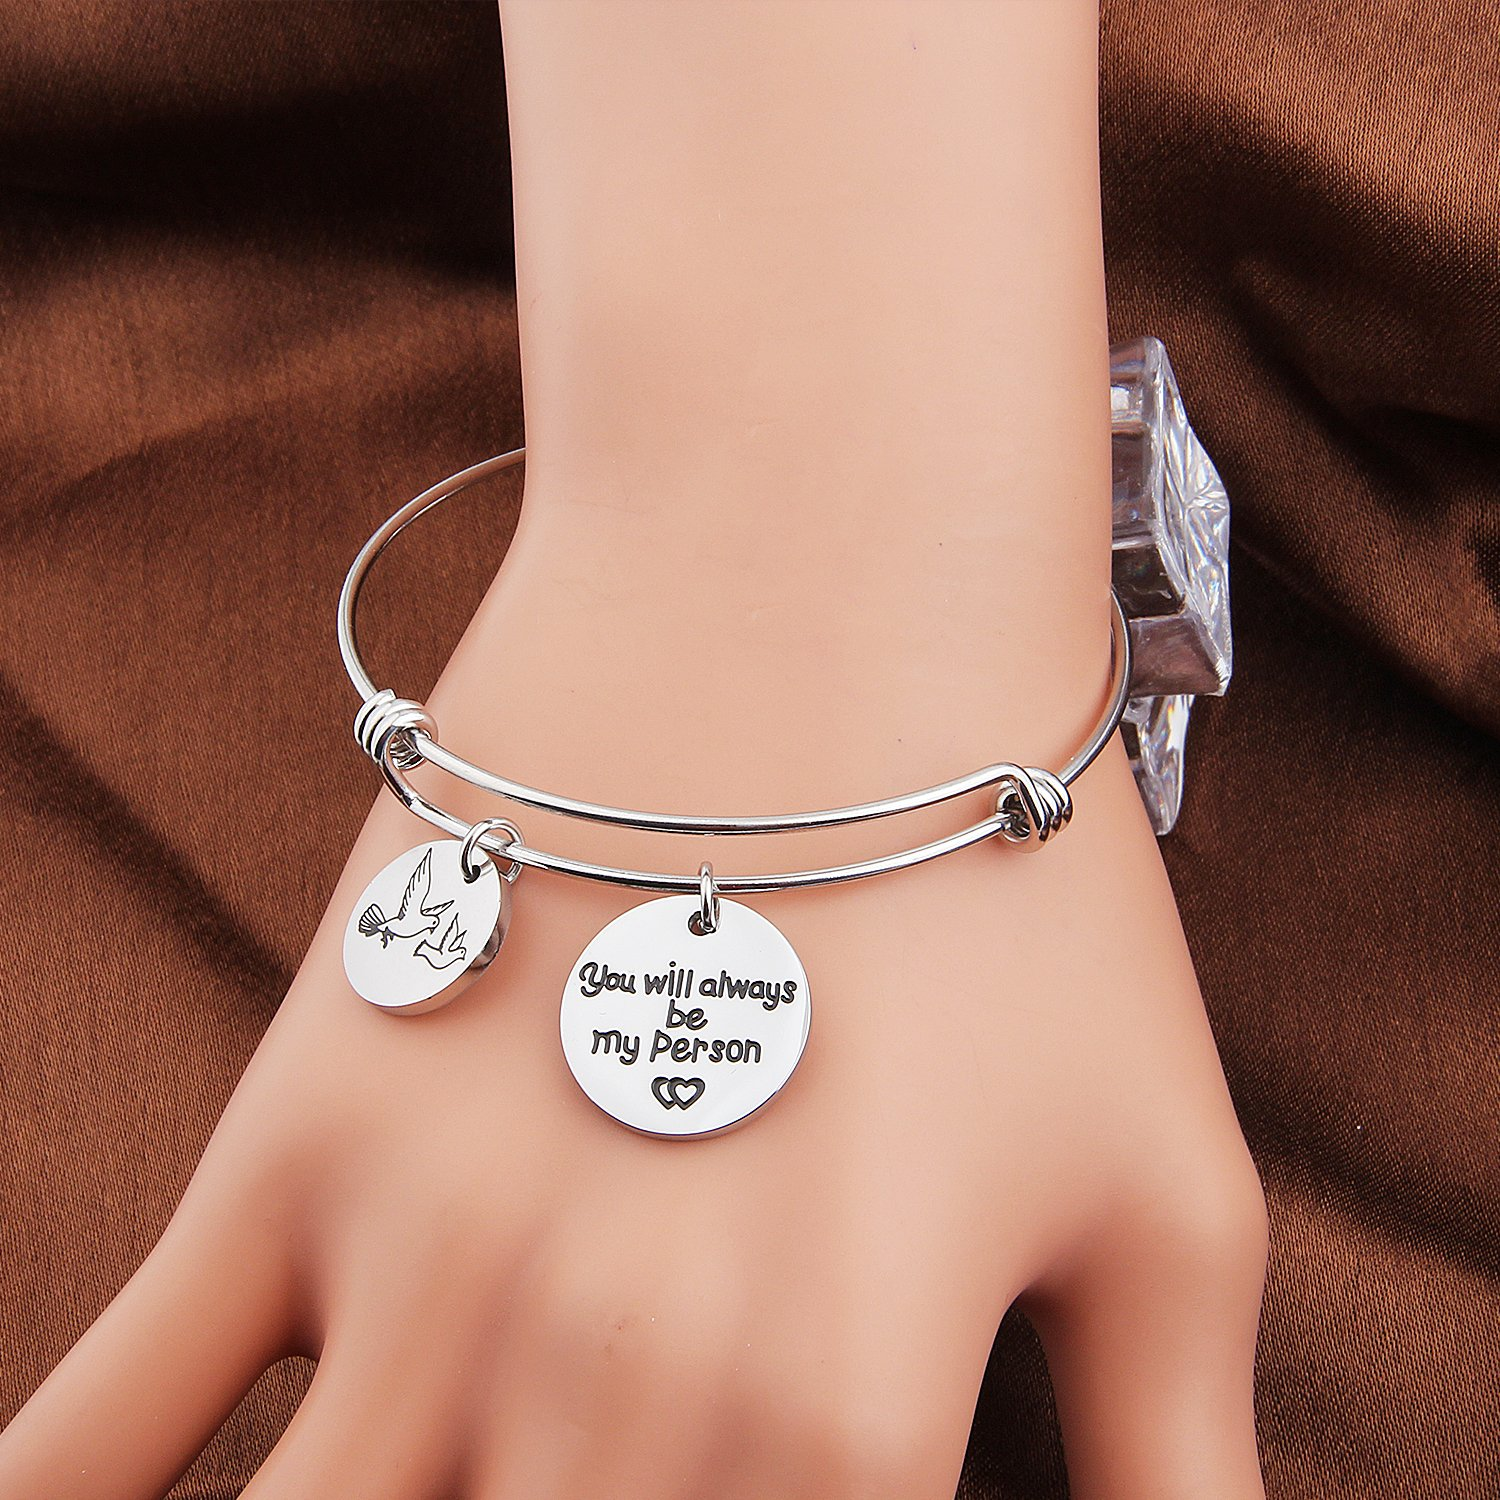 MAOFAED You are My Person Bracelet Couples Bracelet Best Friend,Maid of Honor,Bridesmaid Gift/Jewelry